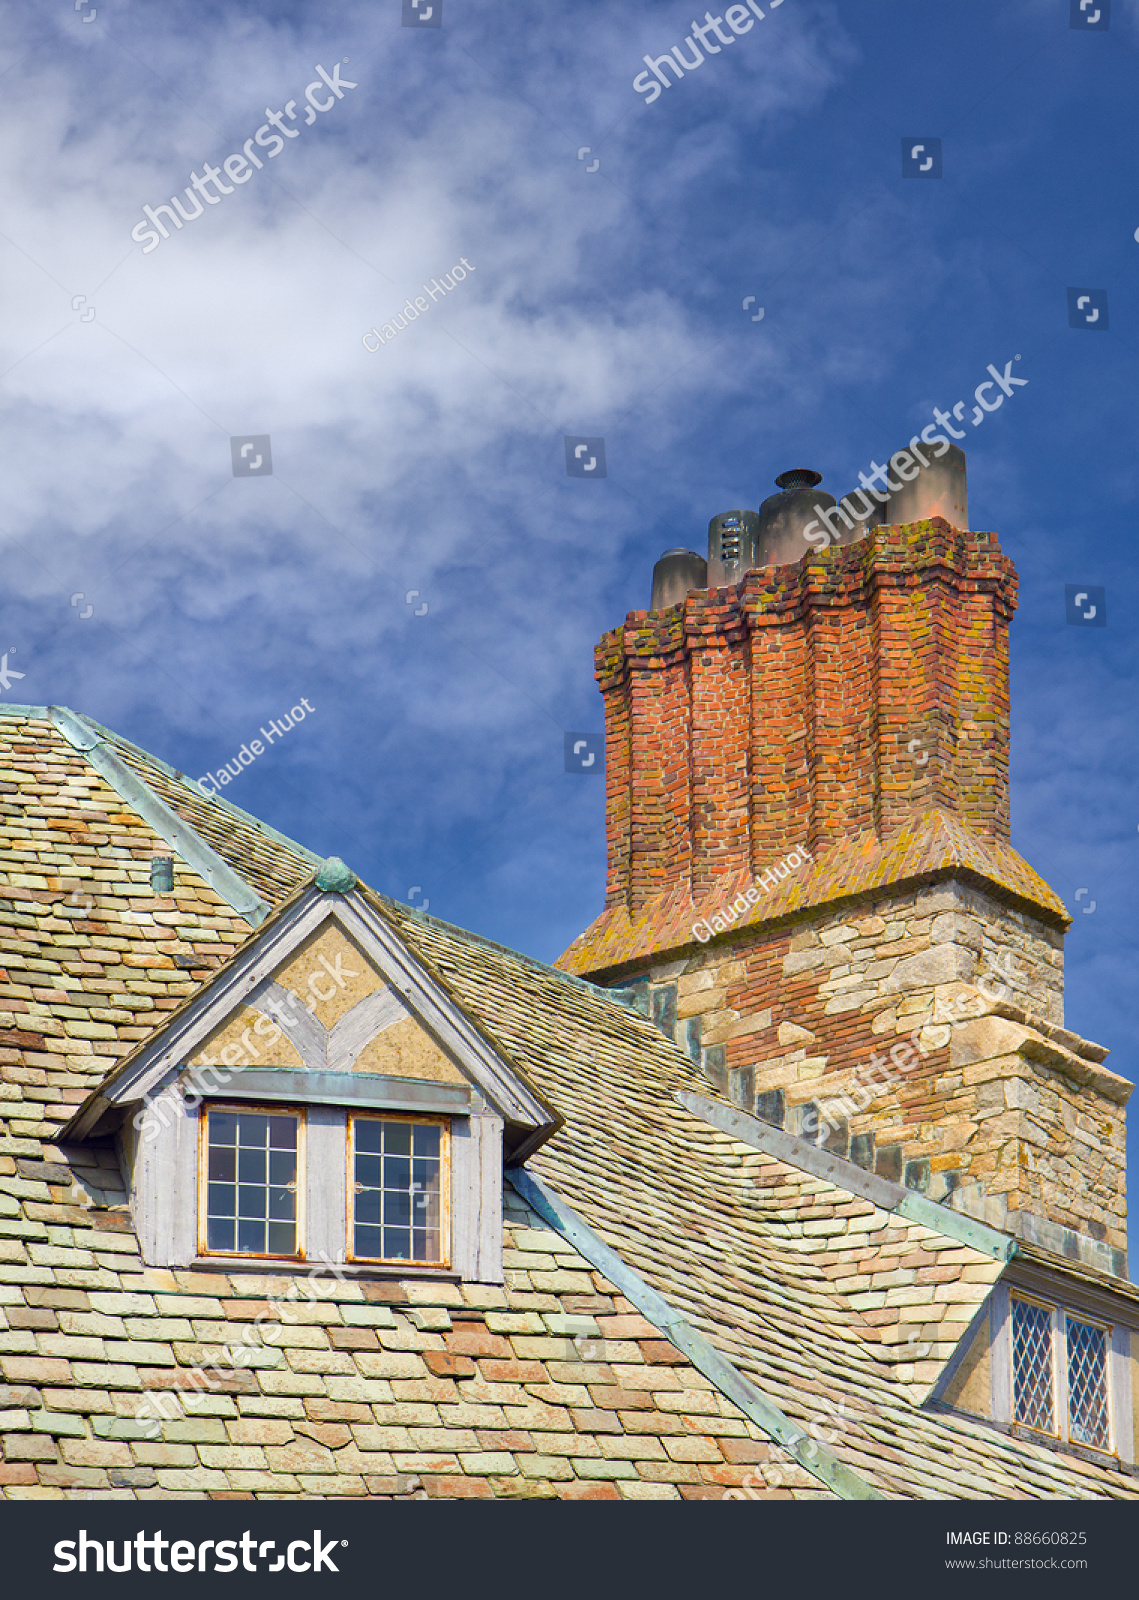 Traditional English chimney stack and windows on old house